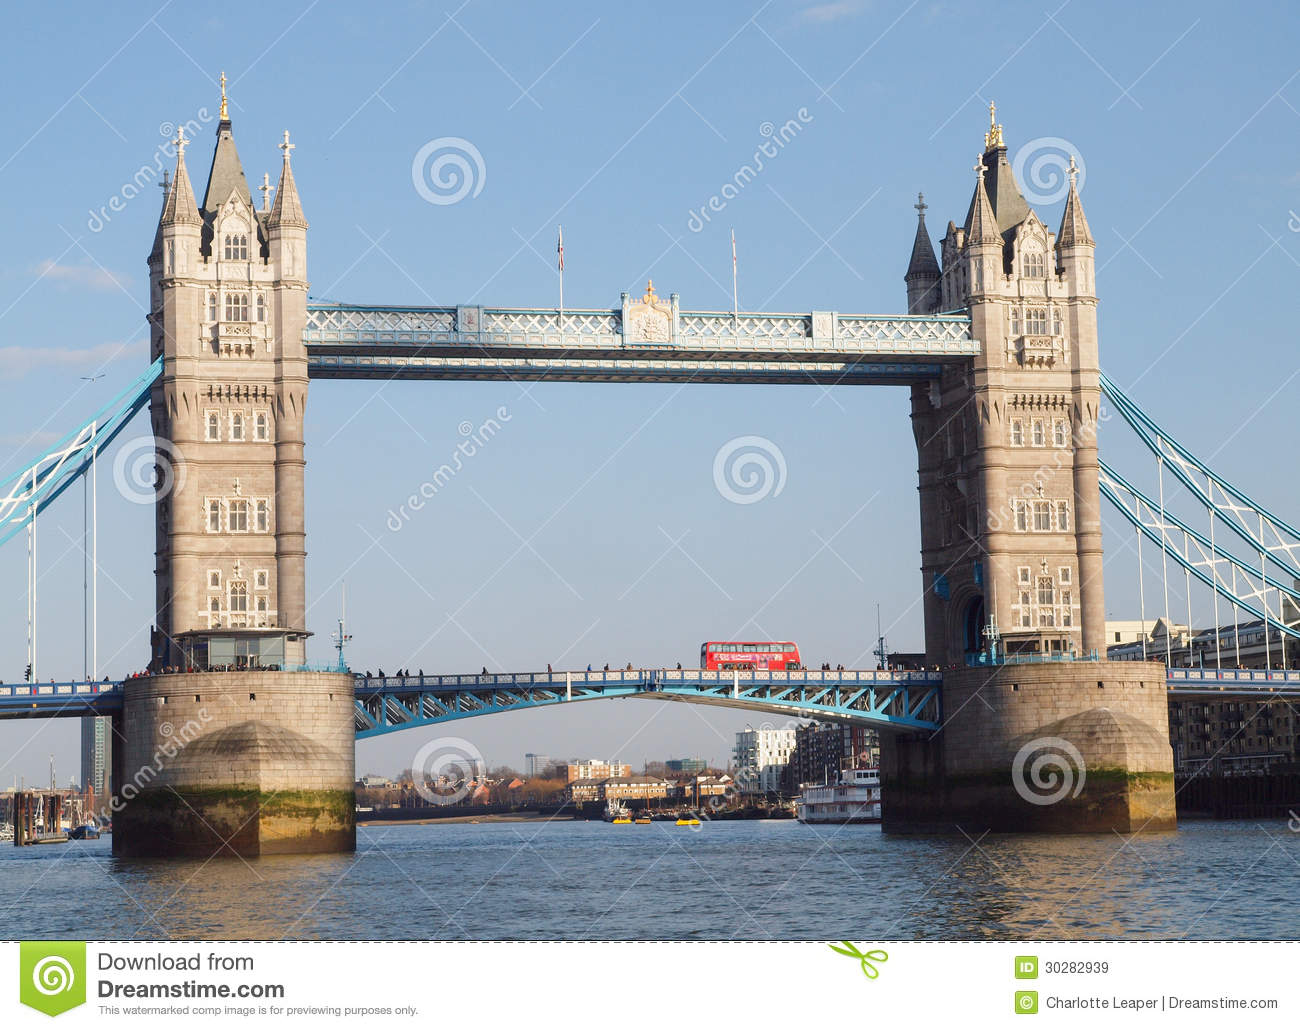 Free Images Traveling People Airport Bridge Business: Tower Bridge London, England Royalty Free Stock Images